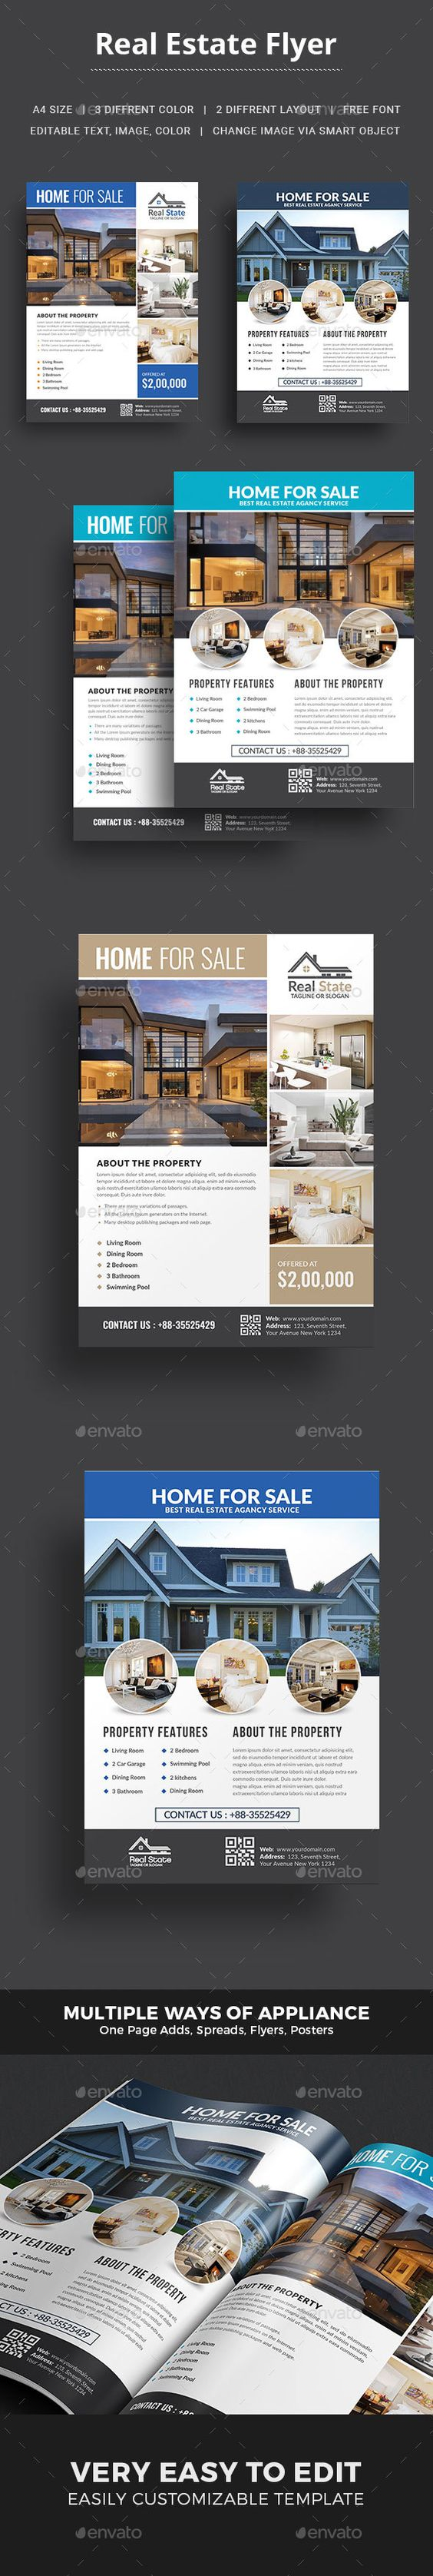 real estate flyer template advertising house and real estate buy real estate flyer template by classicdesignp on graphicriver real estate flyer template this real estate flyer template is a great tool for promoting